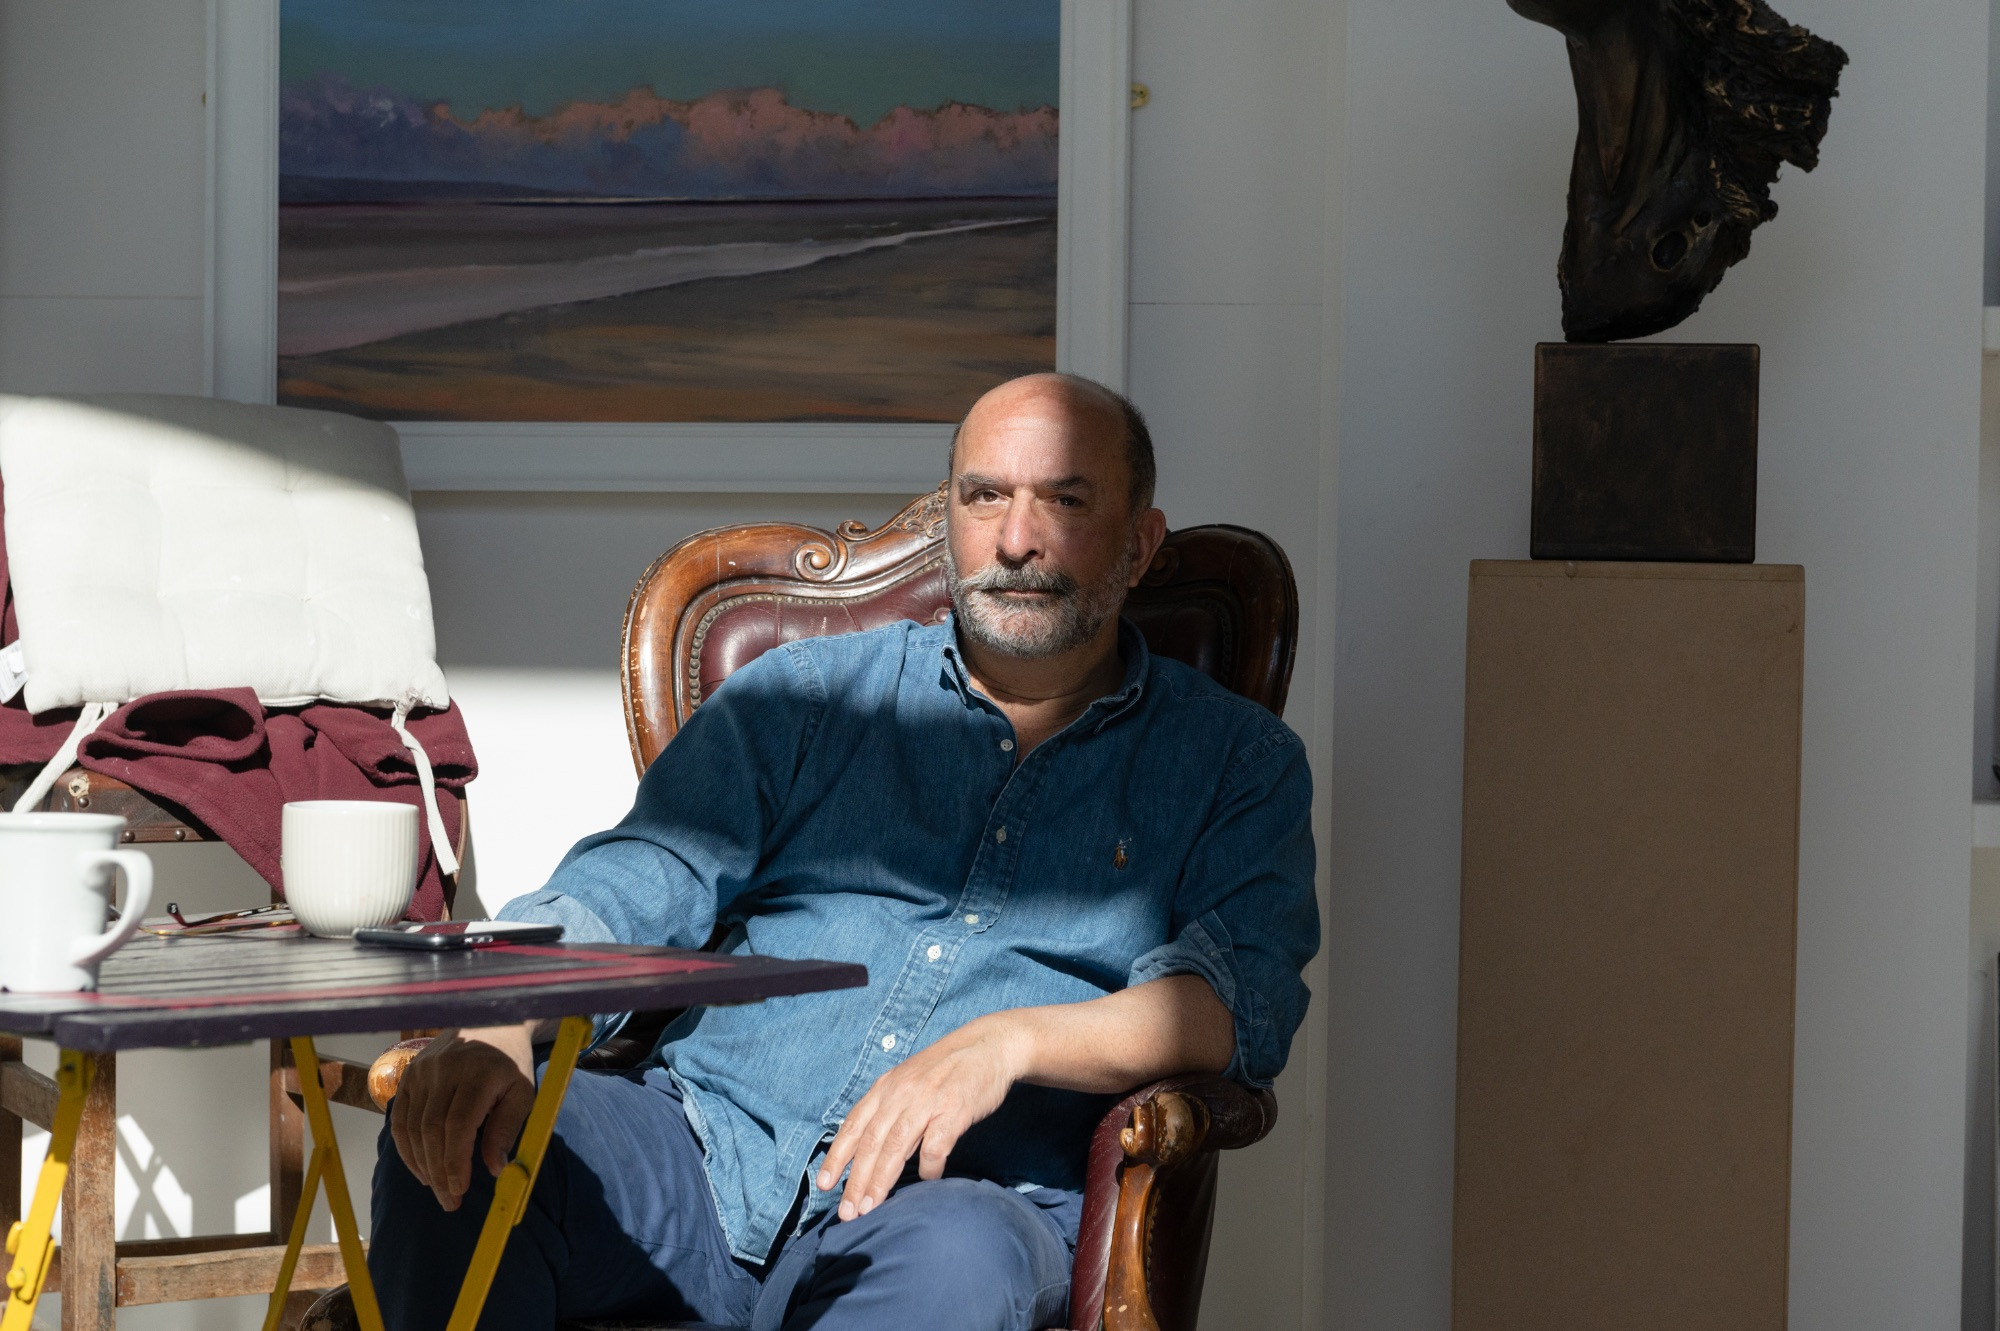 Portrait of a man sitting inside with paintings and sculpture around him